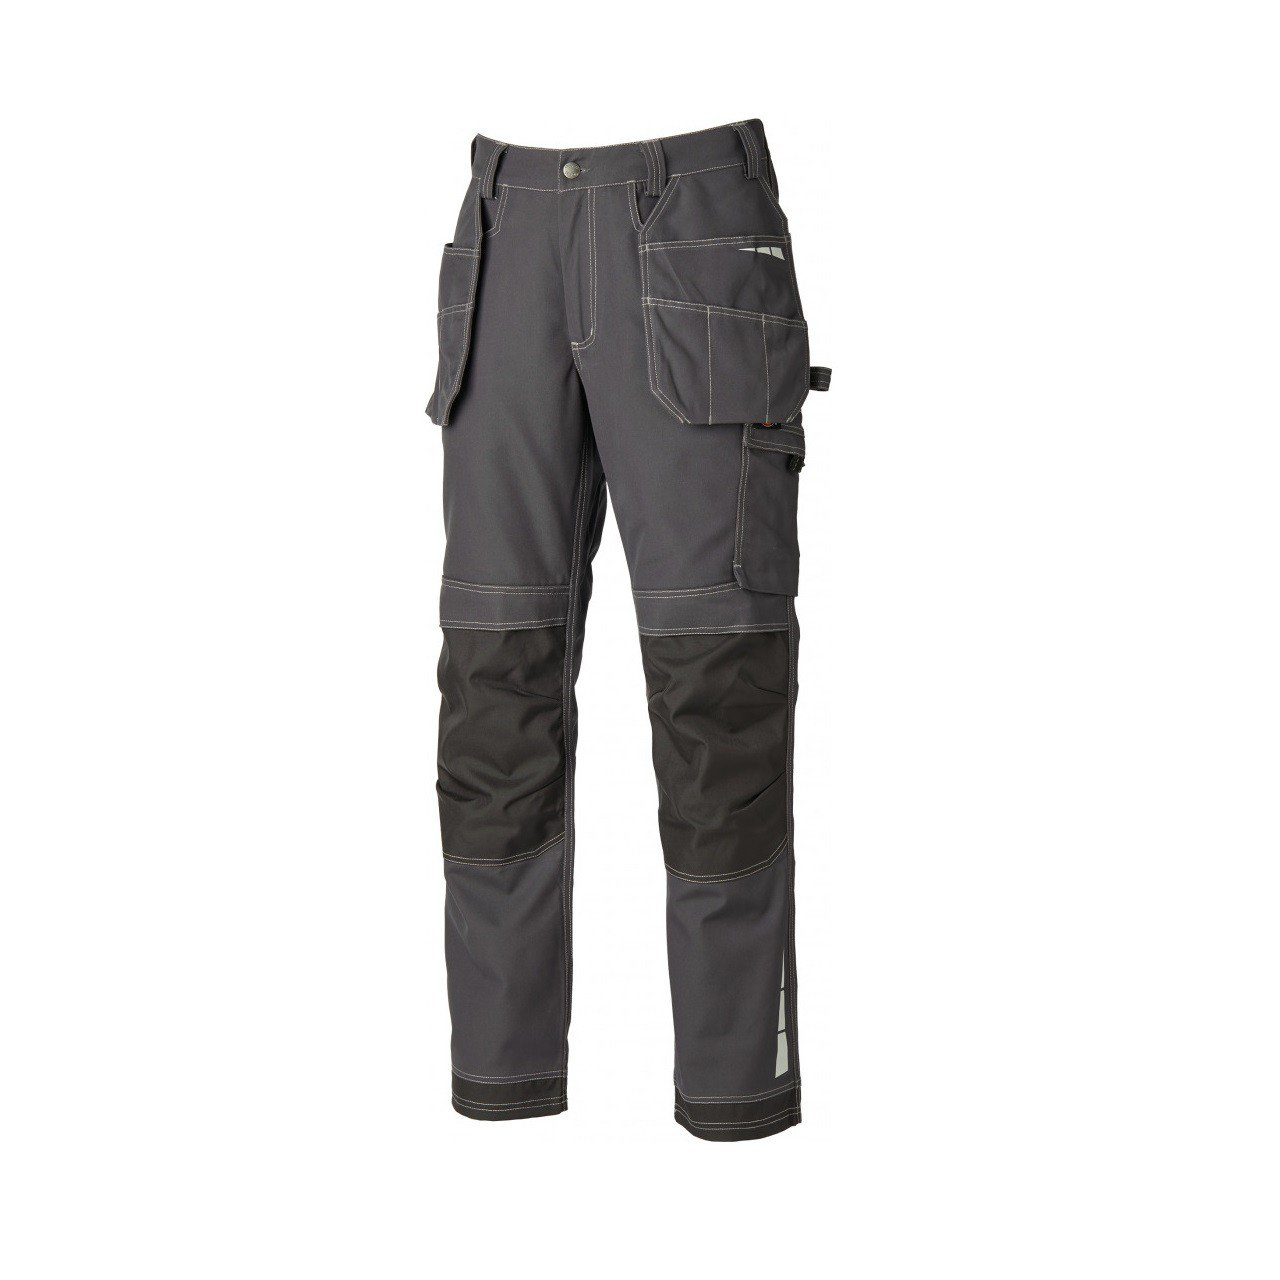 Pantalon de travail Dickies Eisenhower Extreme Trousers gris